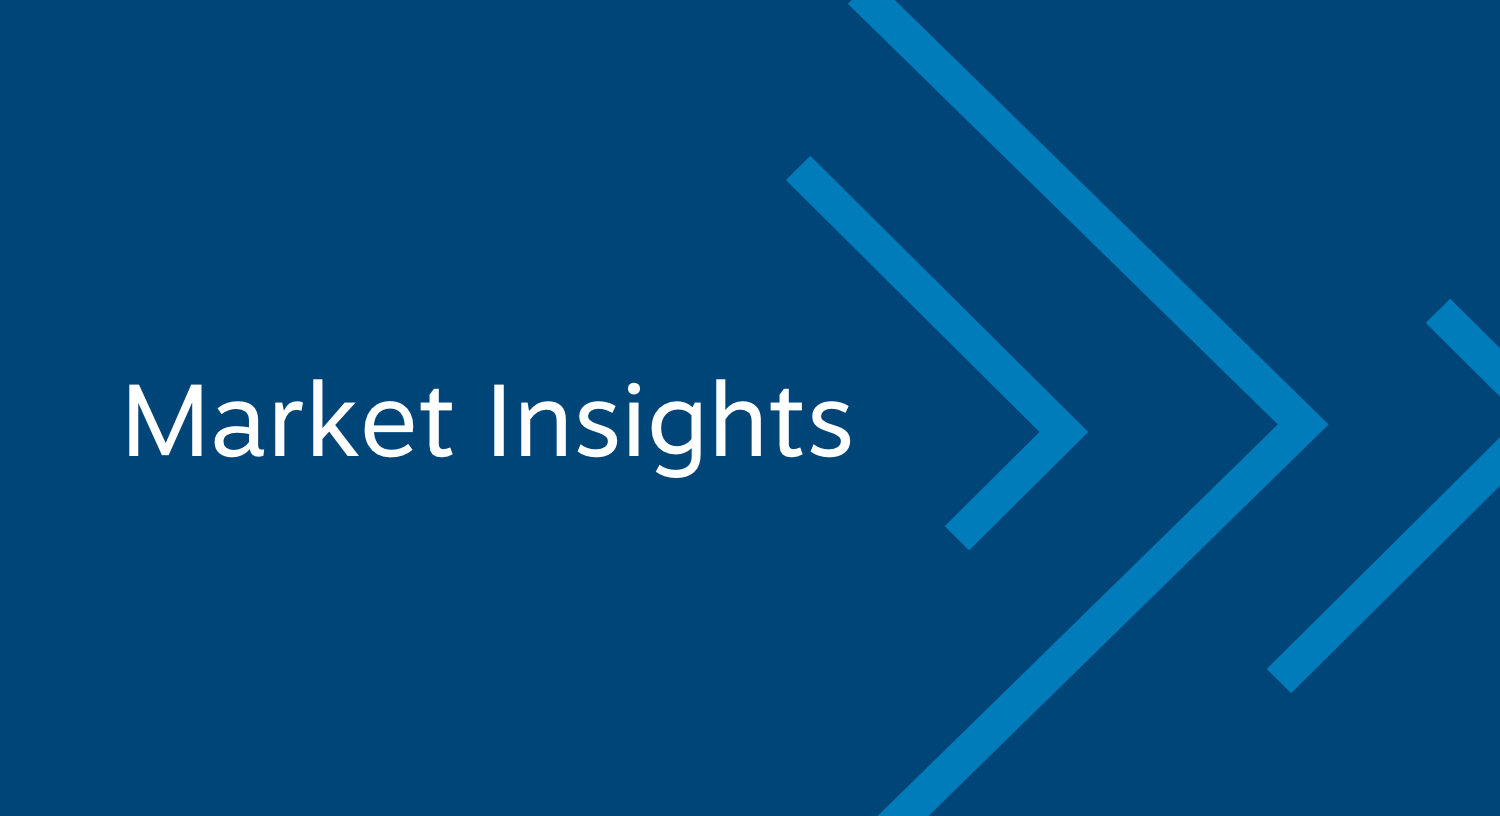 Market Insights - 11/6/17